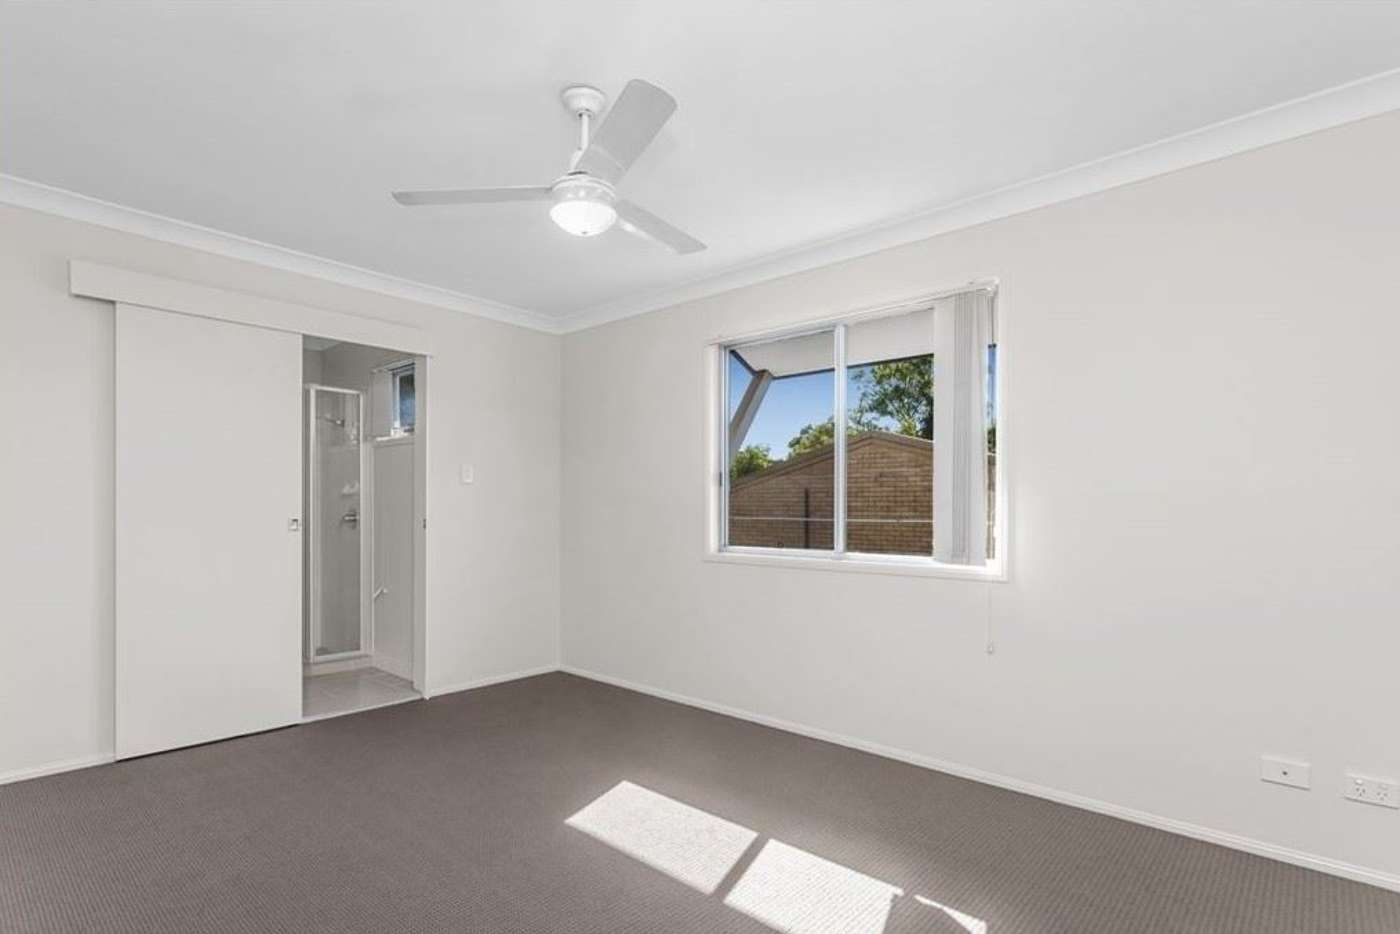 Seventh view of Homely townhouse listing, 6/22 Grasspan Street, Zillmere QLD 4034